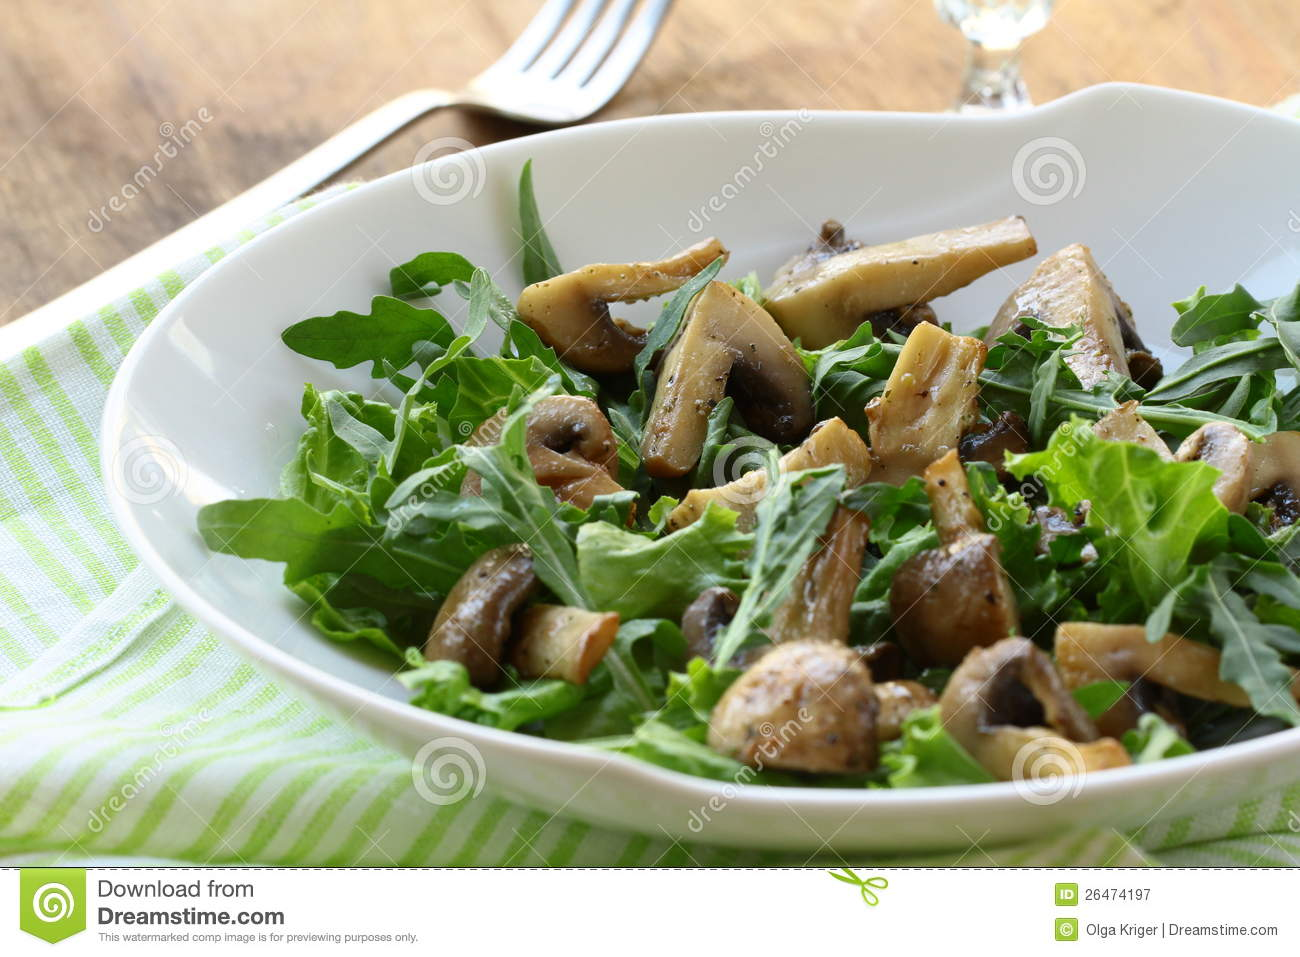 Royalty Free Stock Photography: Fresh salad with grilled mushrooms